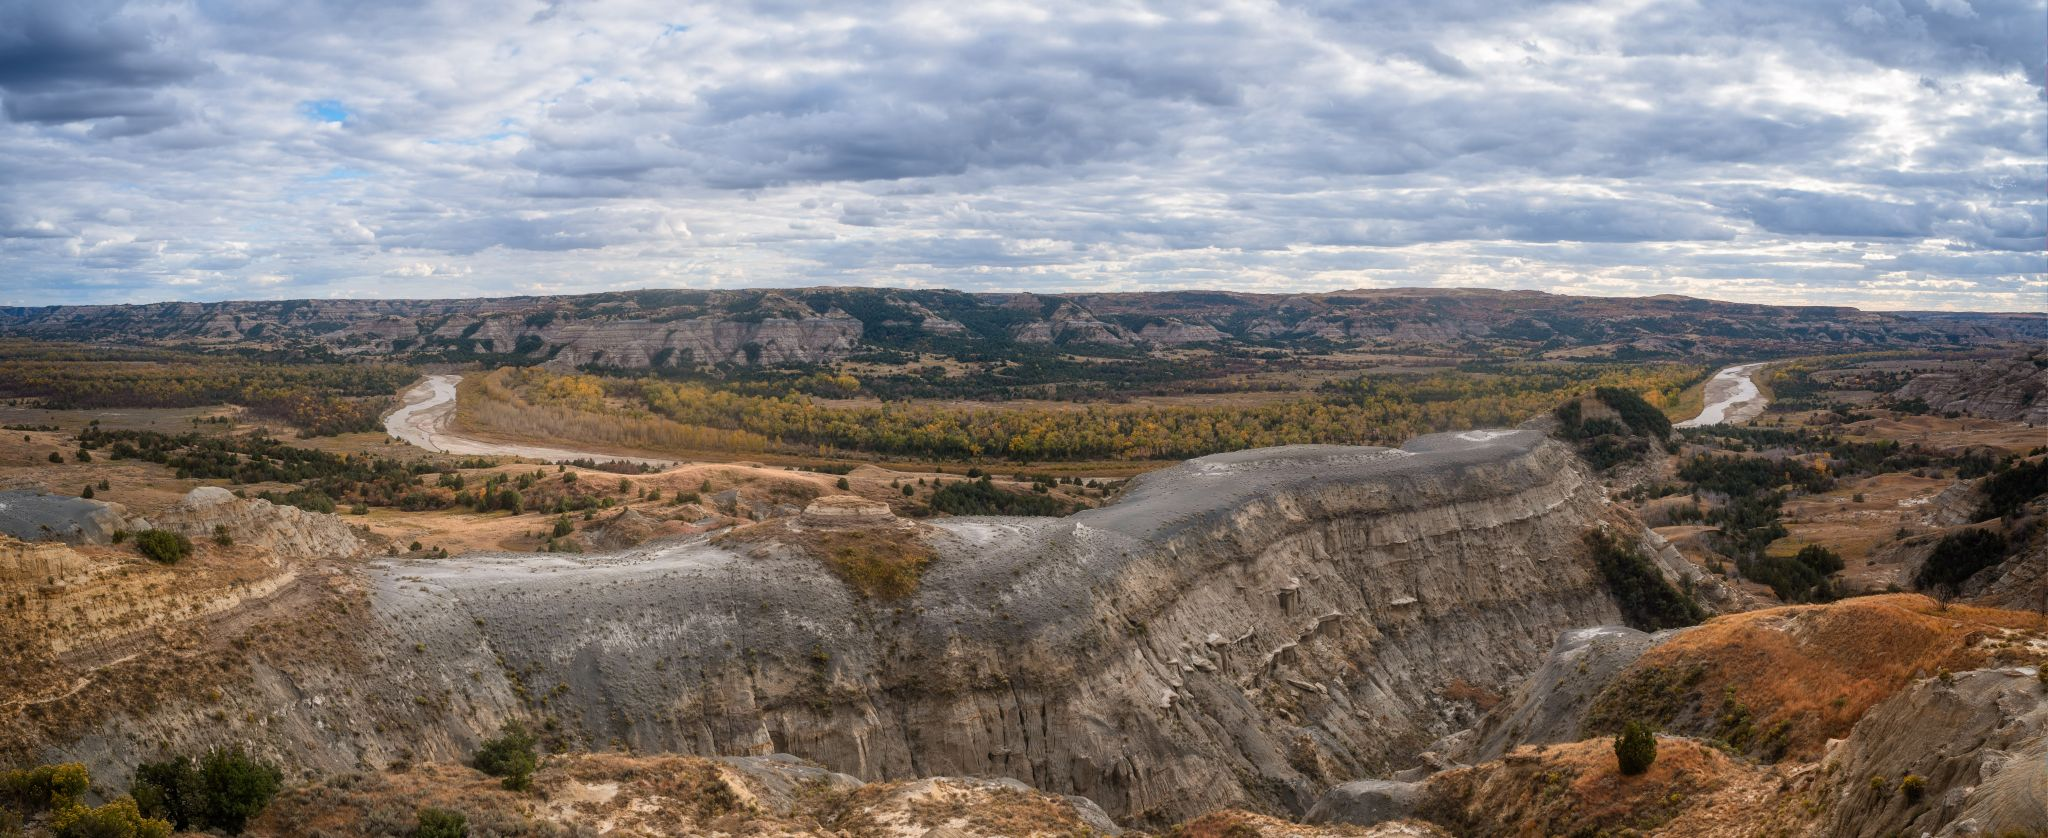 Theodore Roosevelt National Park - River Bend Overlook, USA